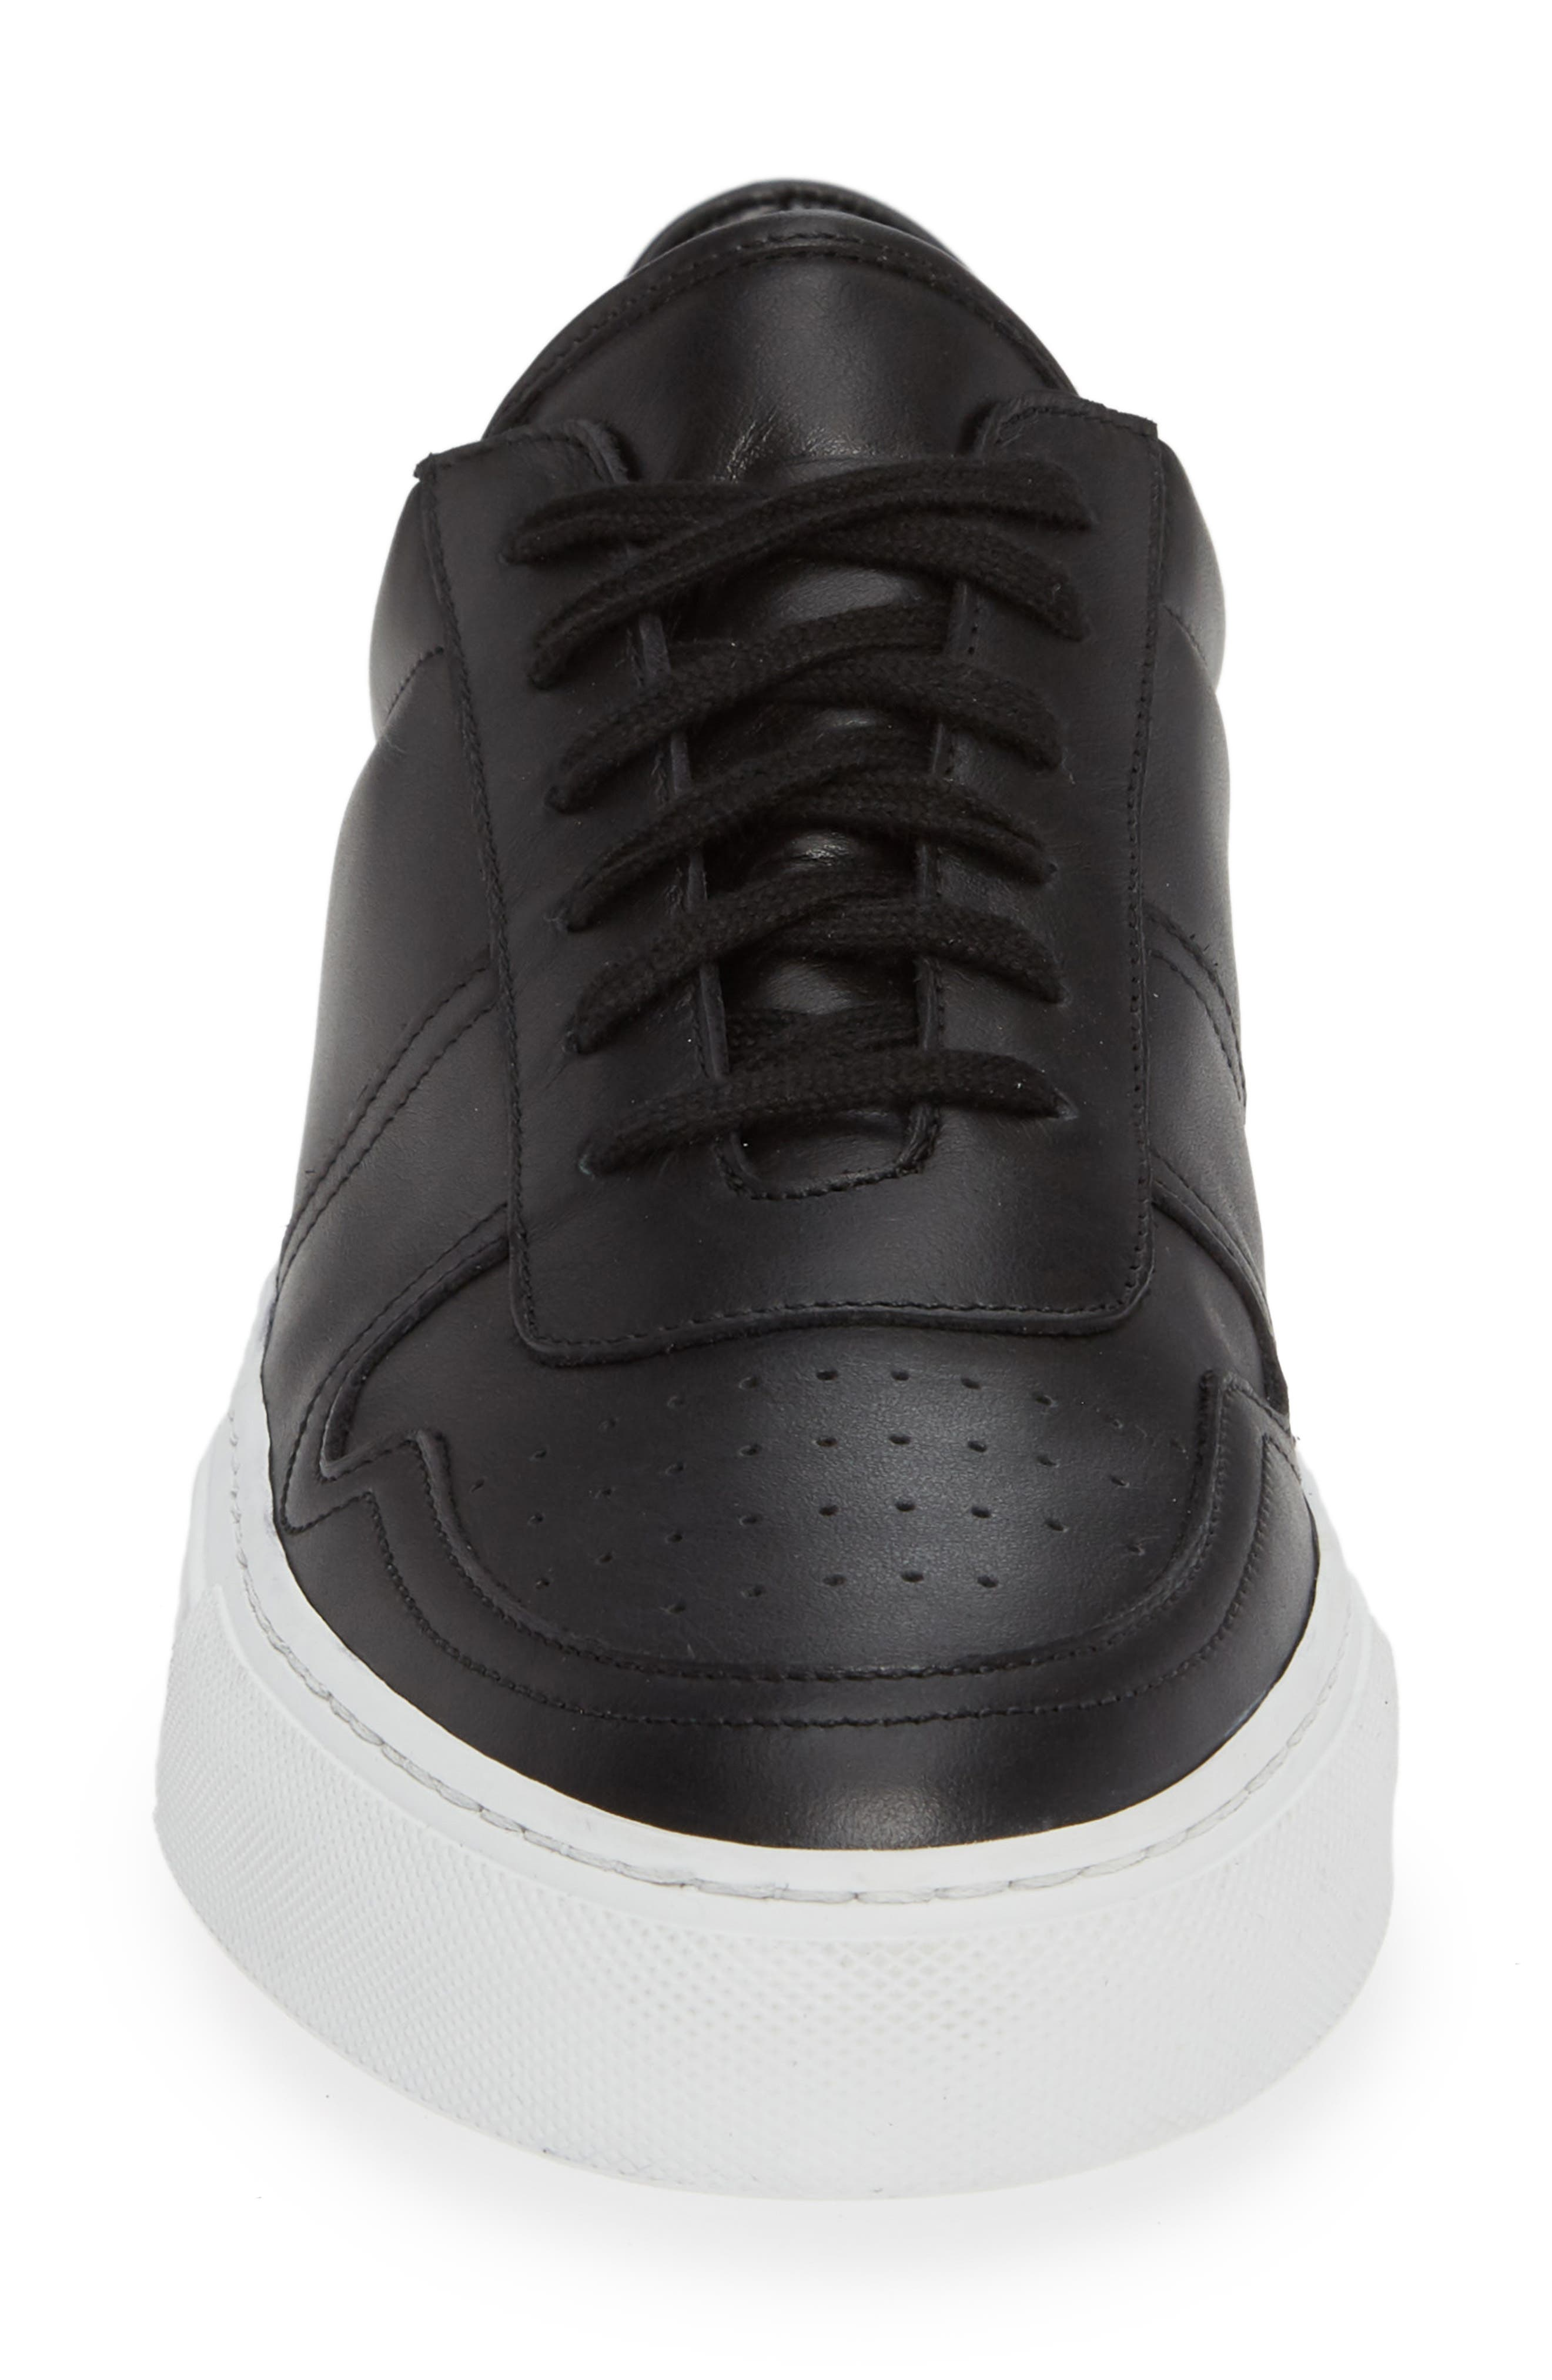 COMMON PROJECTS, Bball Low Top Sneaker, Alternate thumbnail 4, color, BLACK